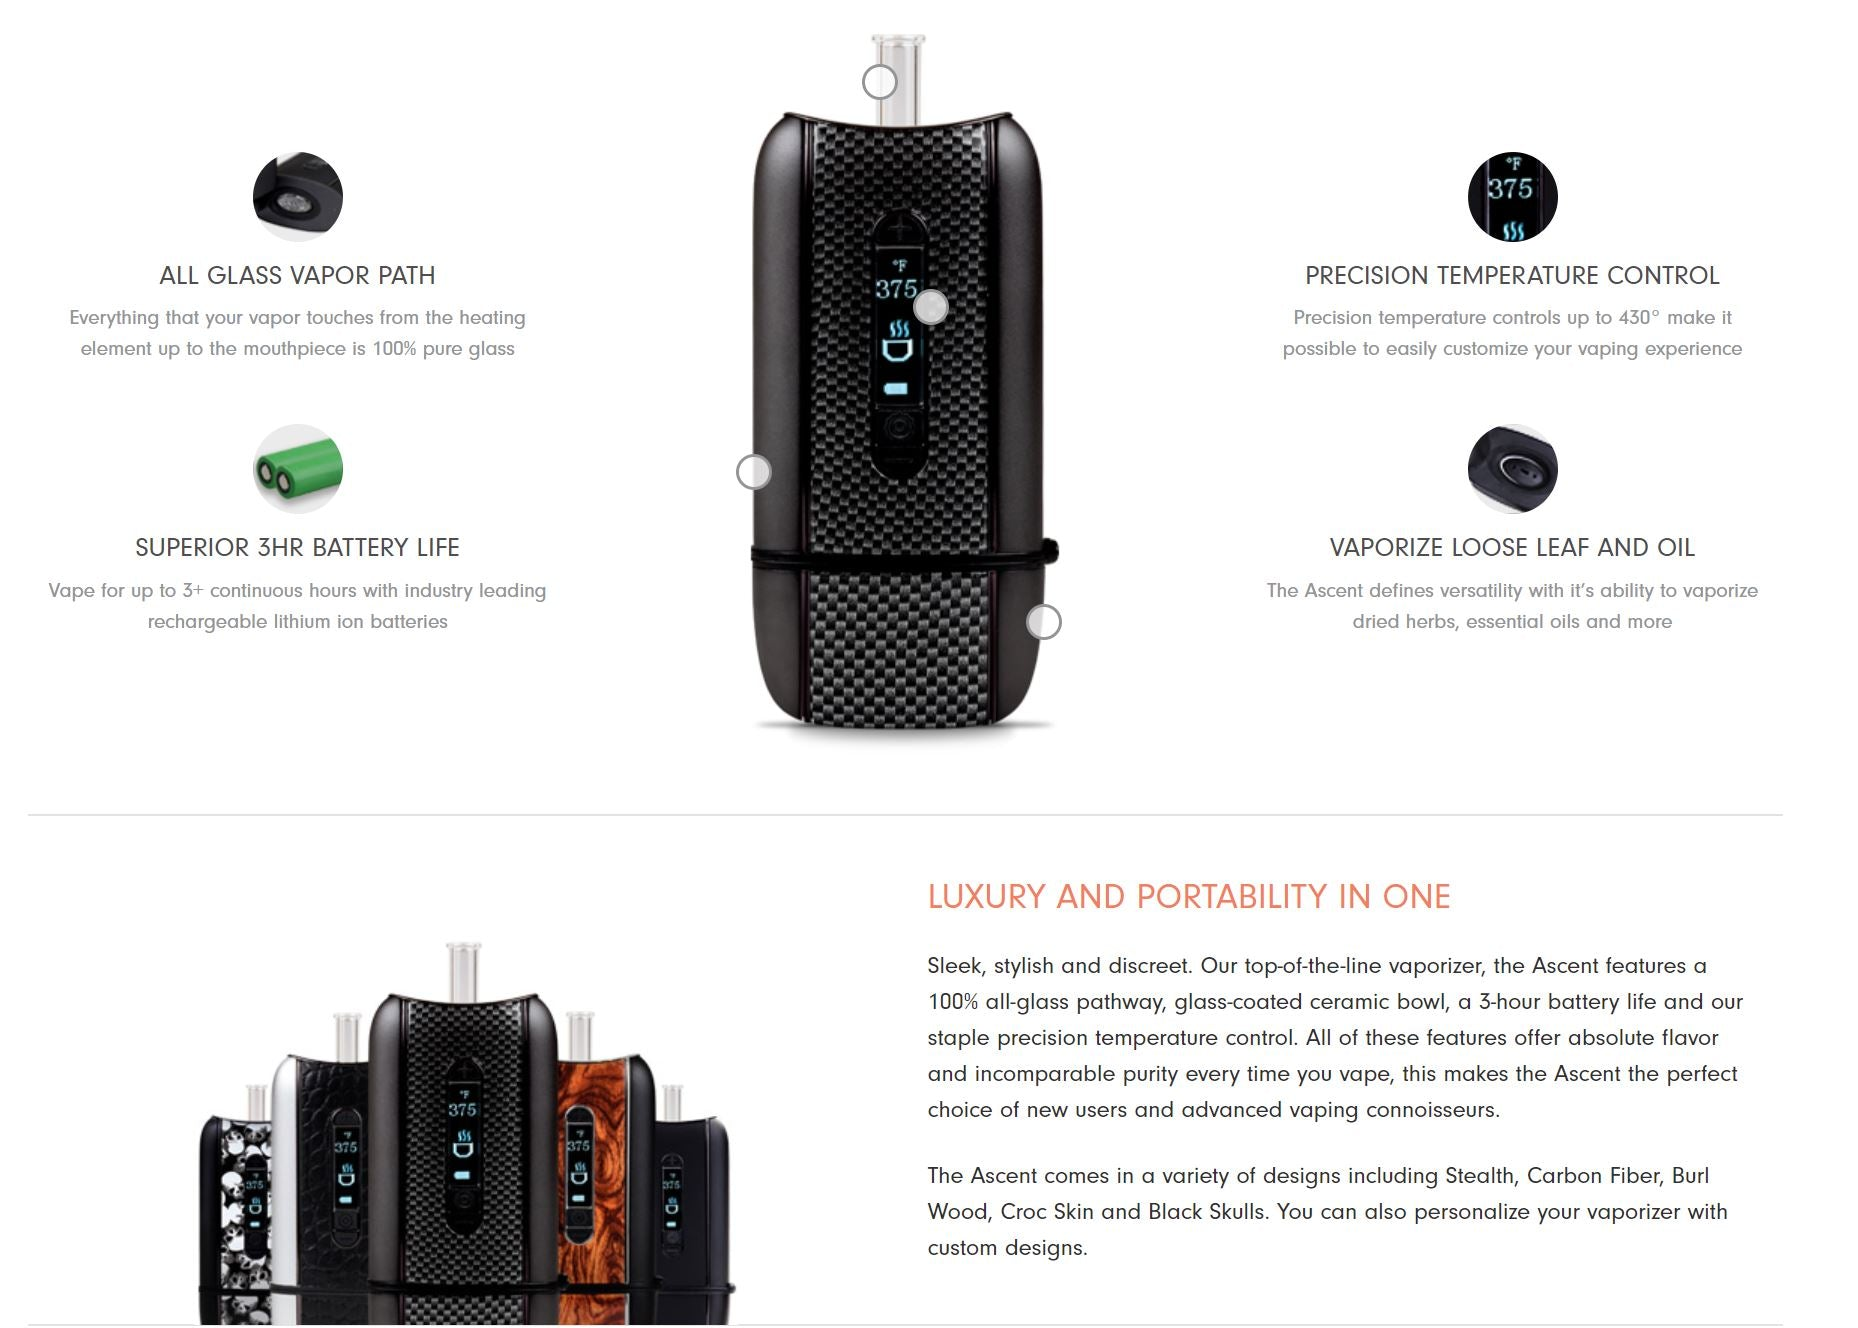 DaVinci Ascent 2-in-1 Vaporizer Kit vaporize both dry herb and concentrates (waxy oils, but not liquids)